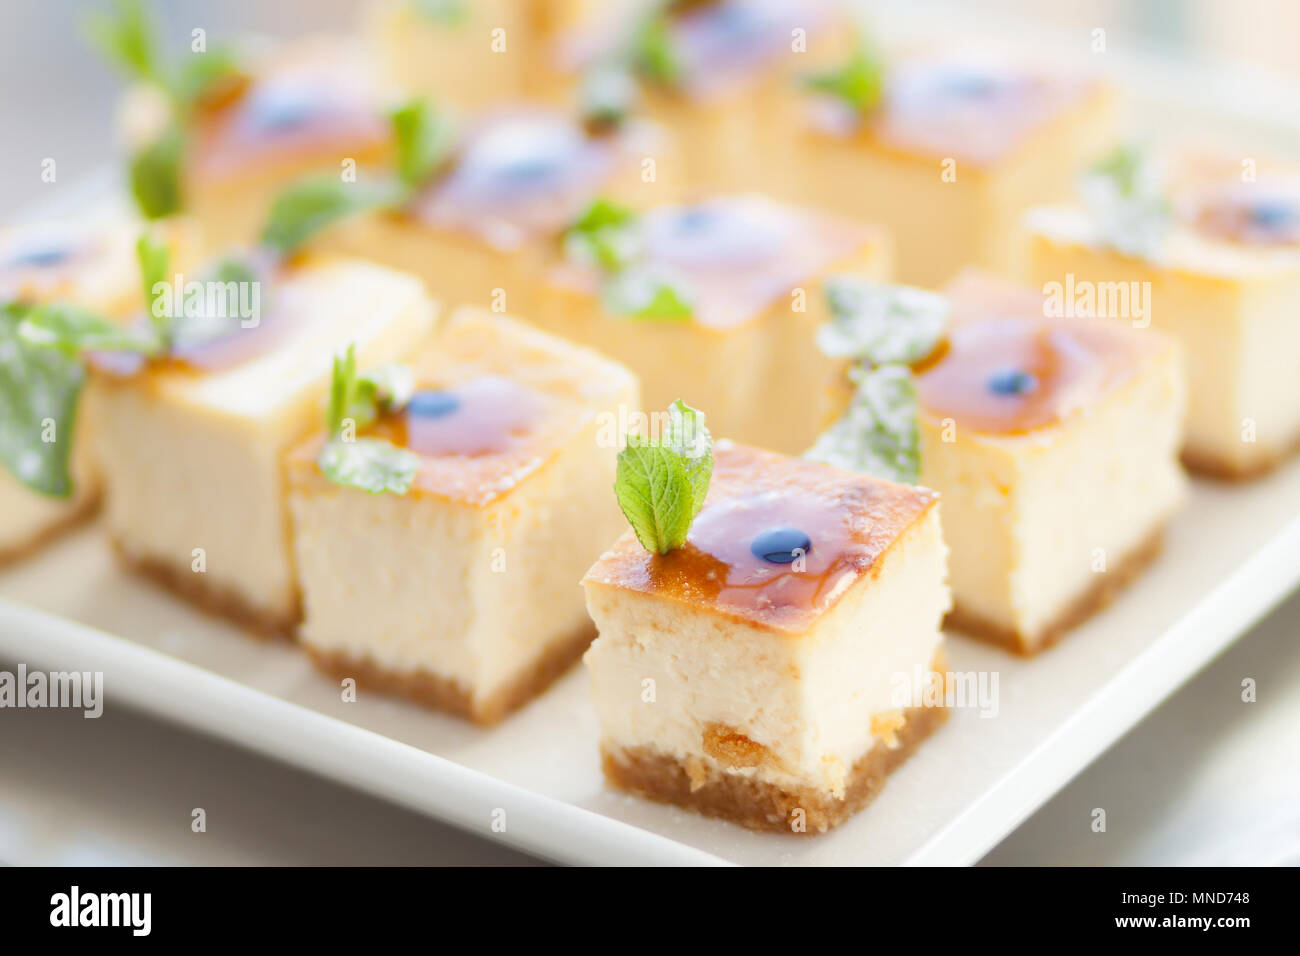 Appetizing cheesecake with mint leaves. Delicious sliced dessert on white plate. - Stock Image